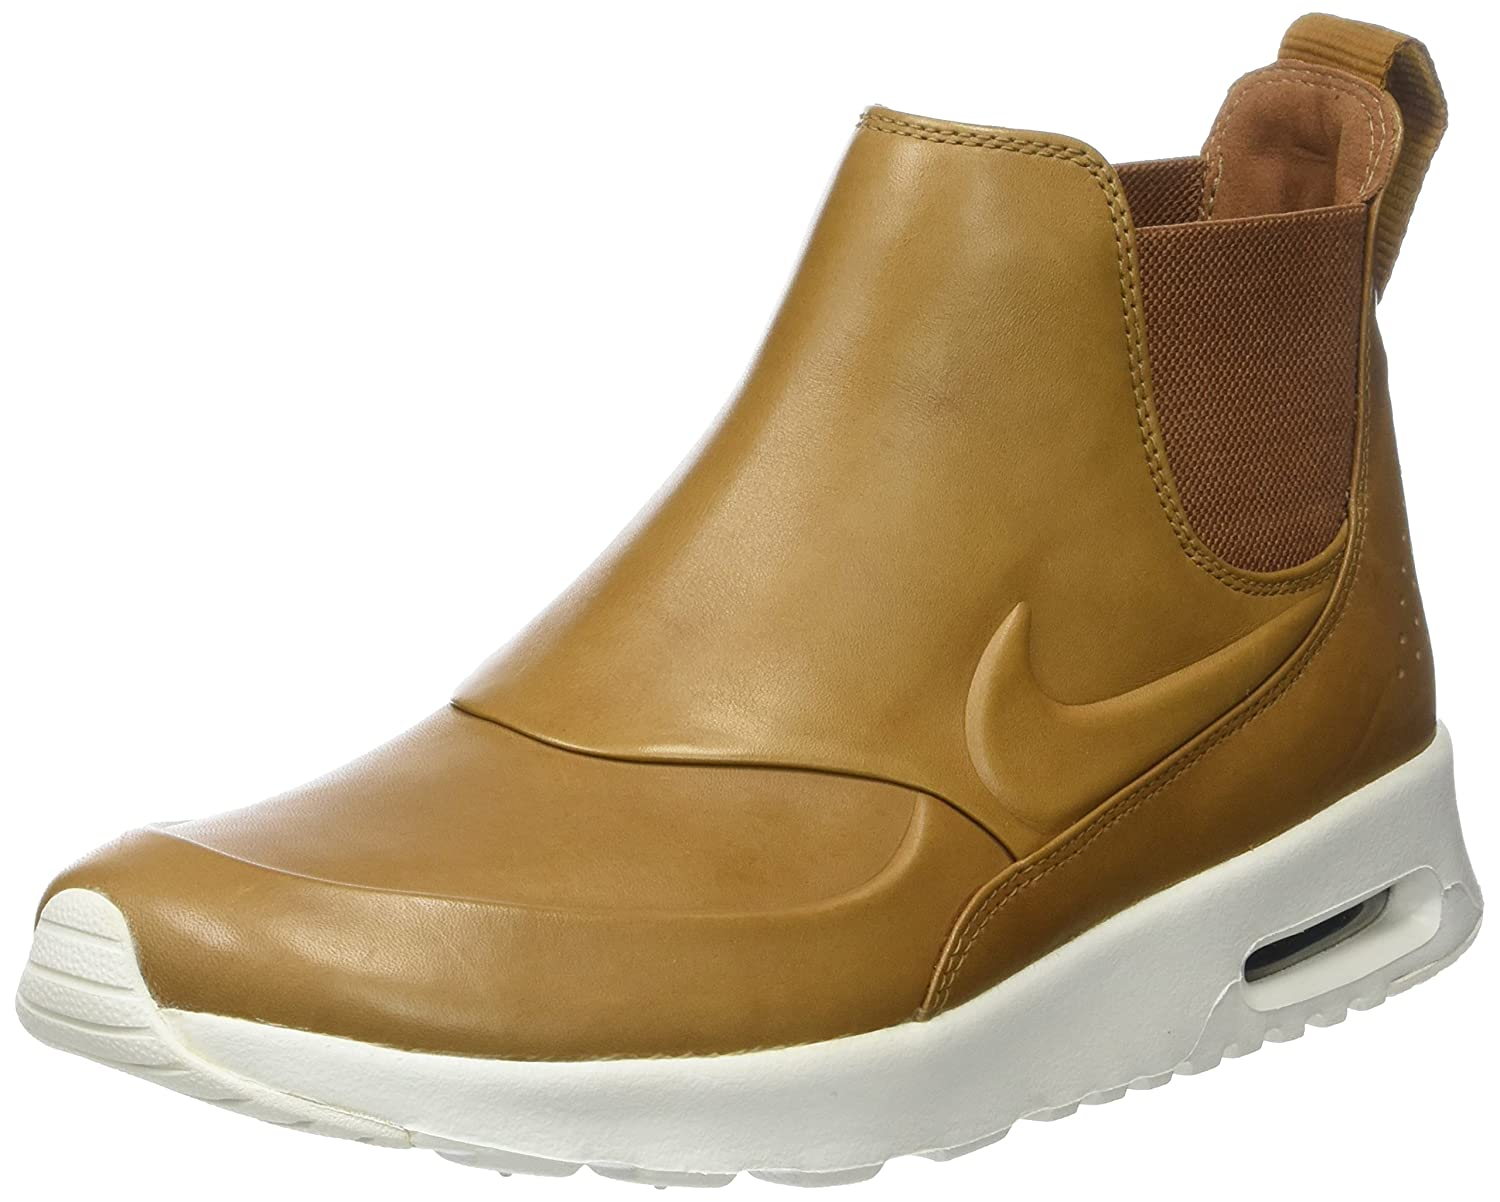 Nike Womens Air Max Thea Mid Leather